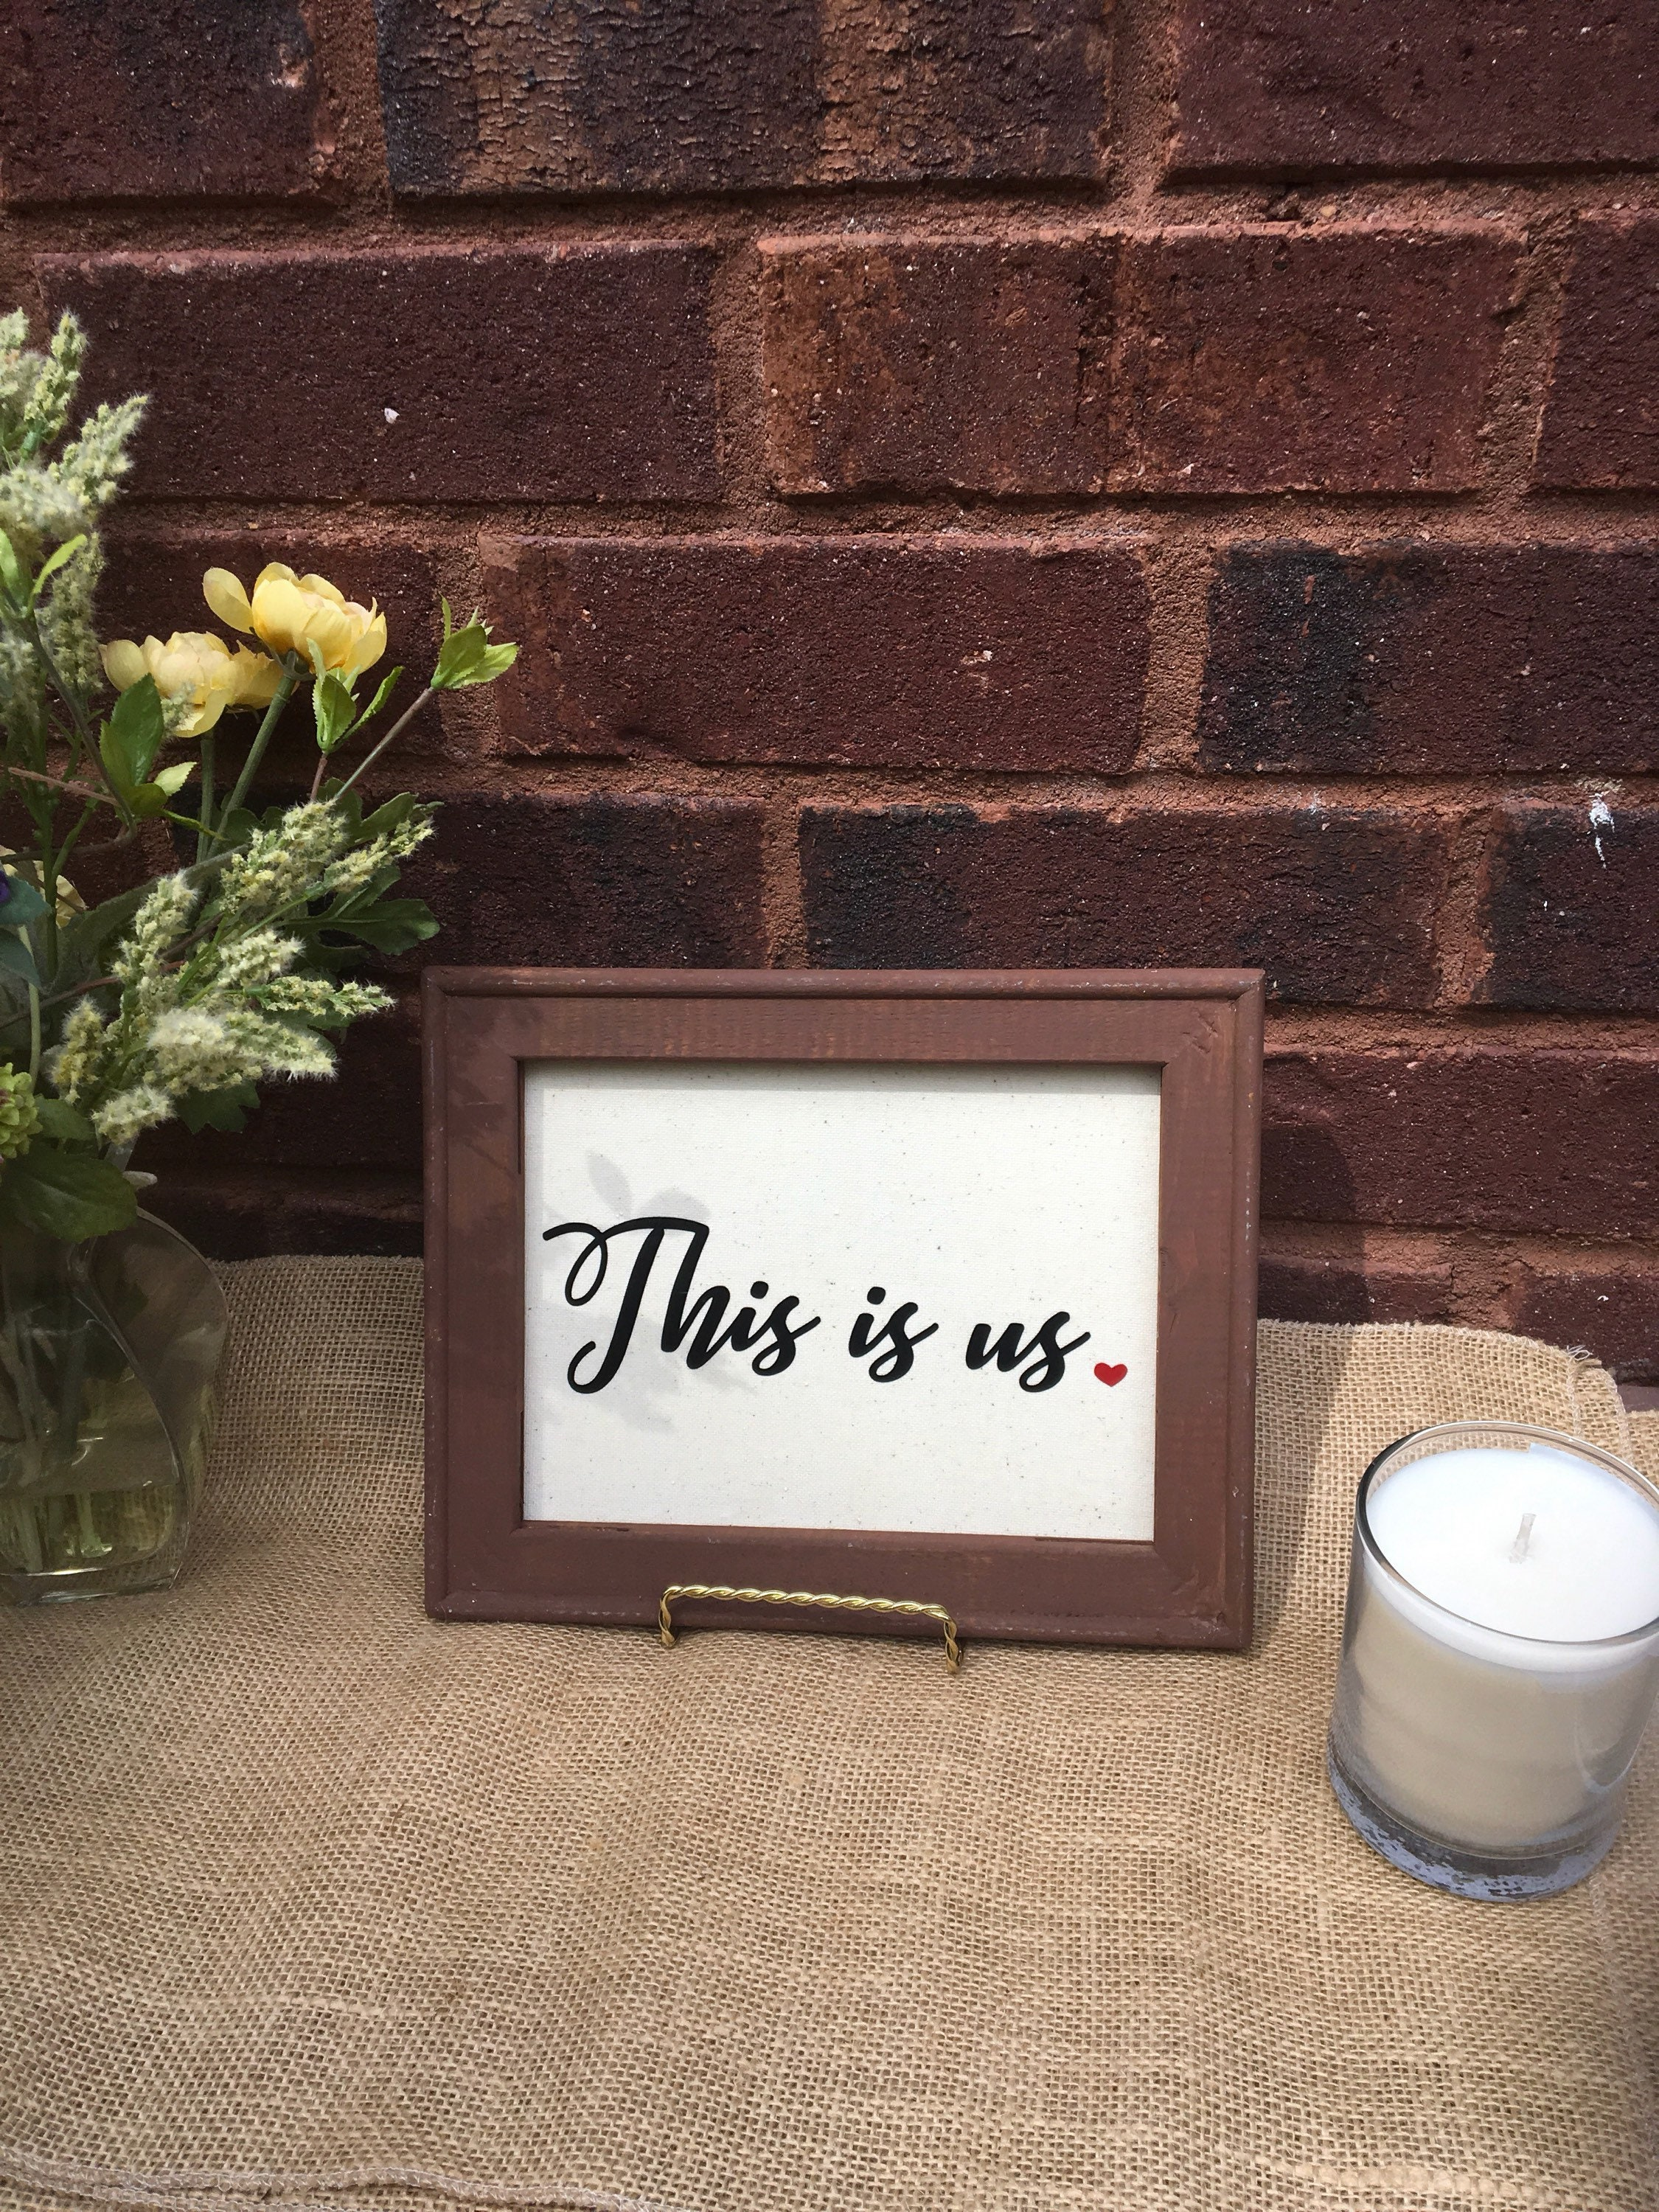 This Is Us Tv Show Canvas Sign Wood Framed Home Decor Painted Or